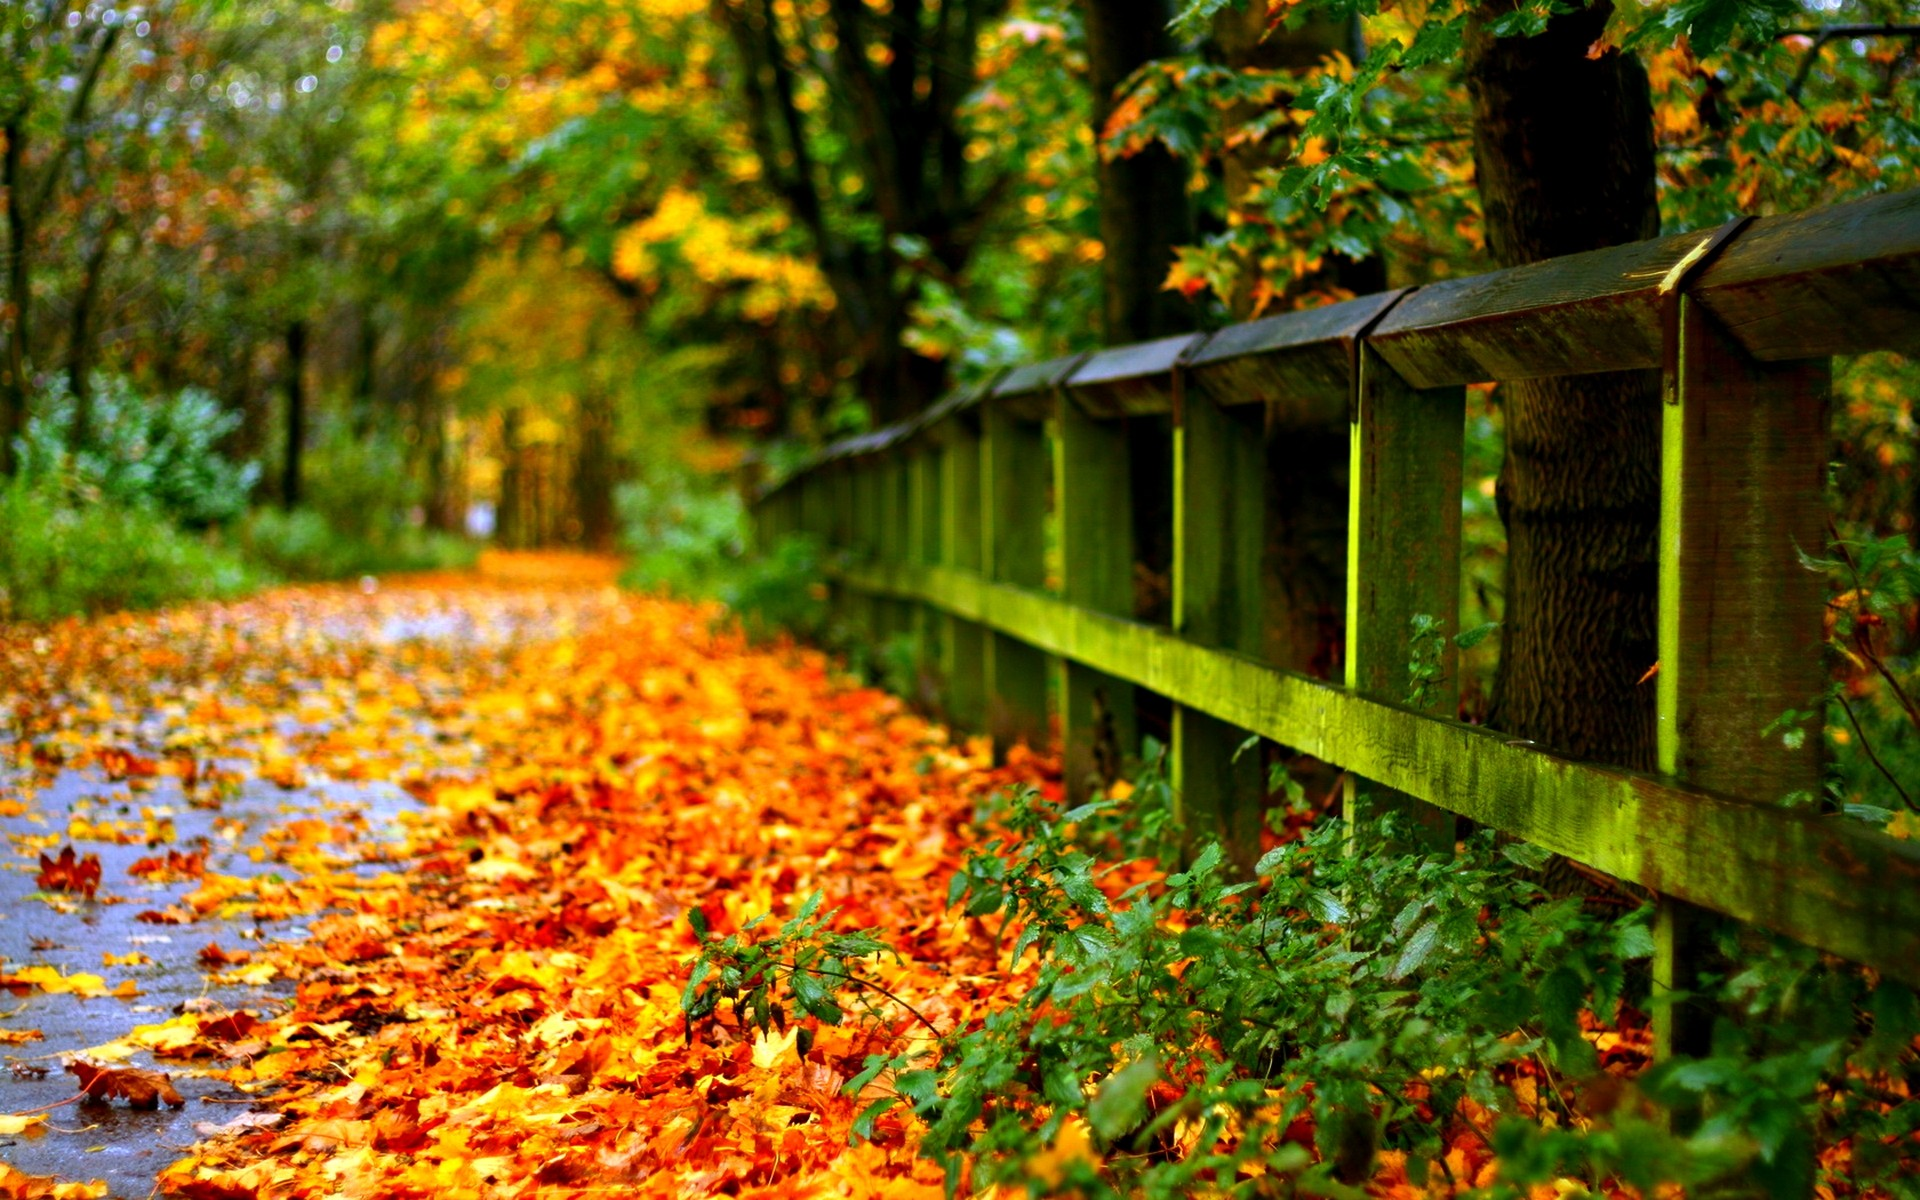 1920x1200 Autumn Leaves on Road Wallpaper